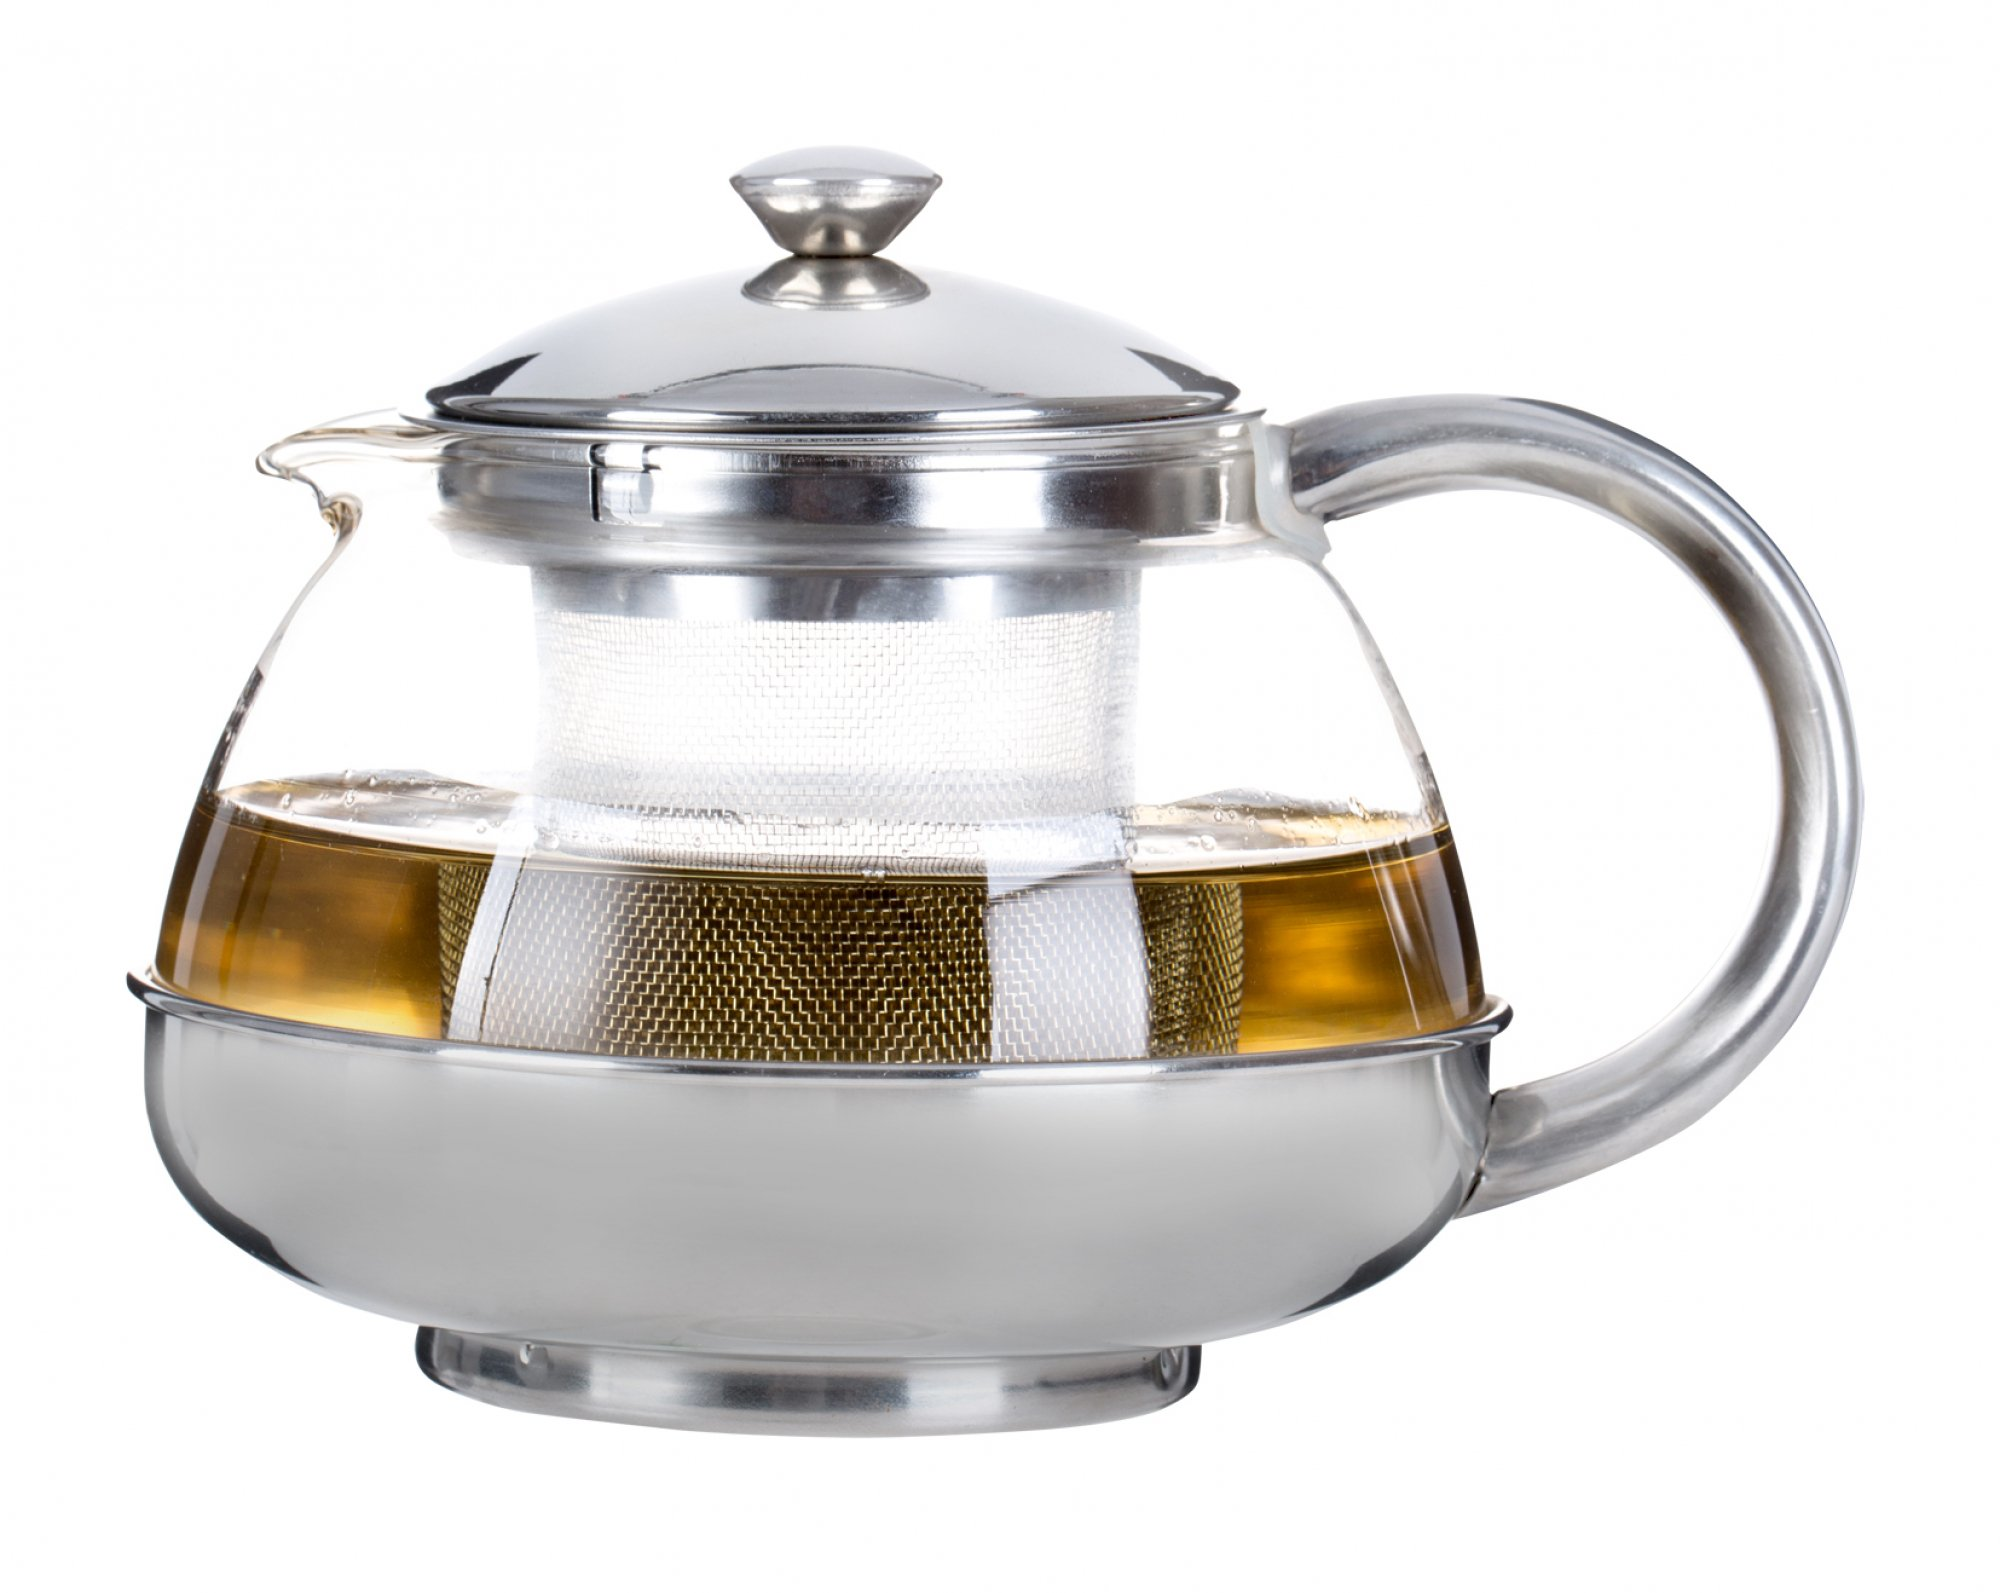 Caf 233 Ol 233 Classic Infuser Teapot 750ml At Barnitts Online